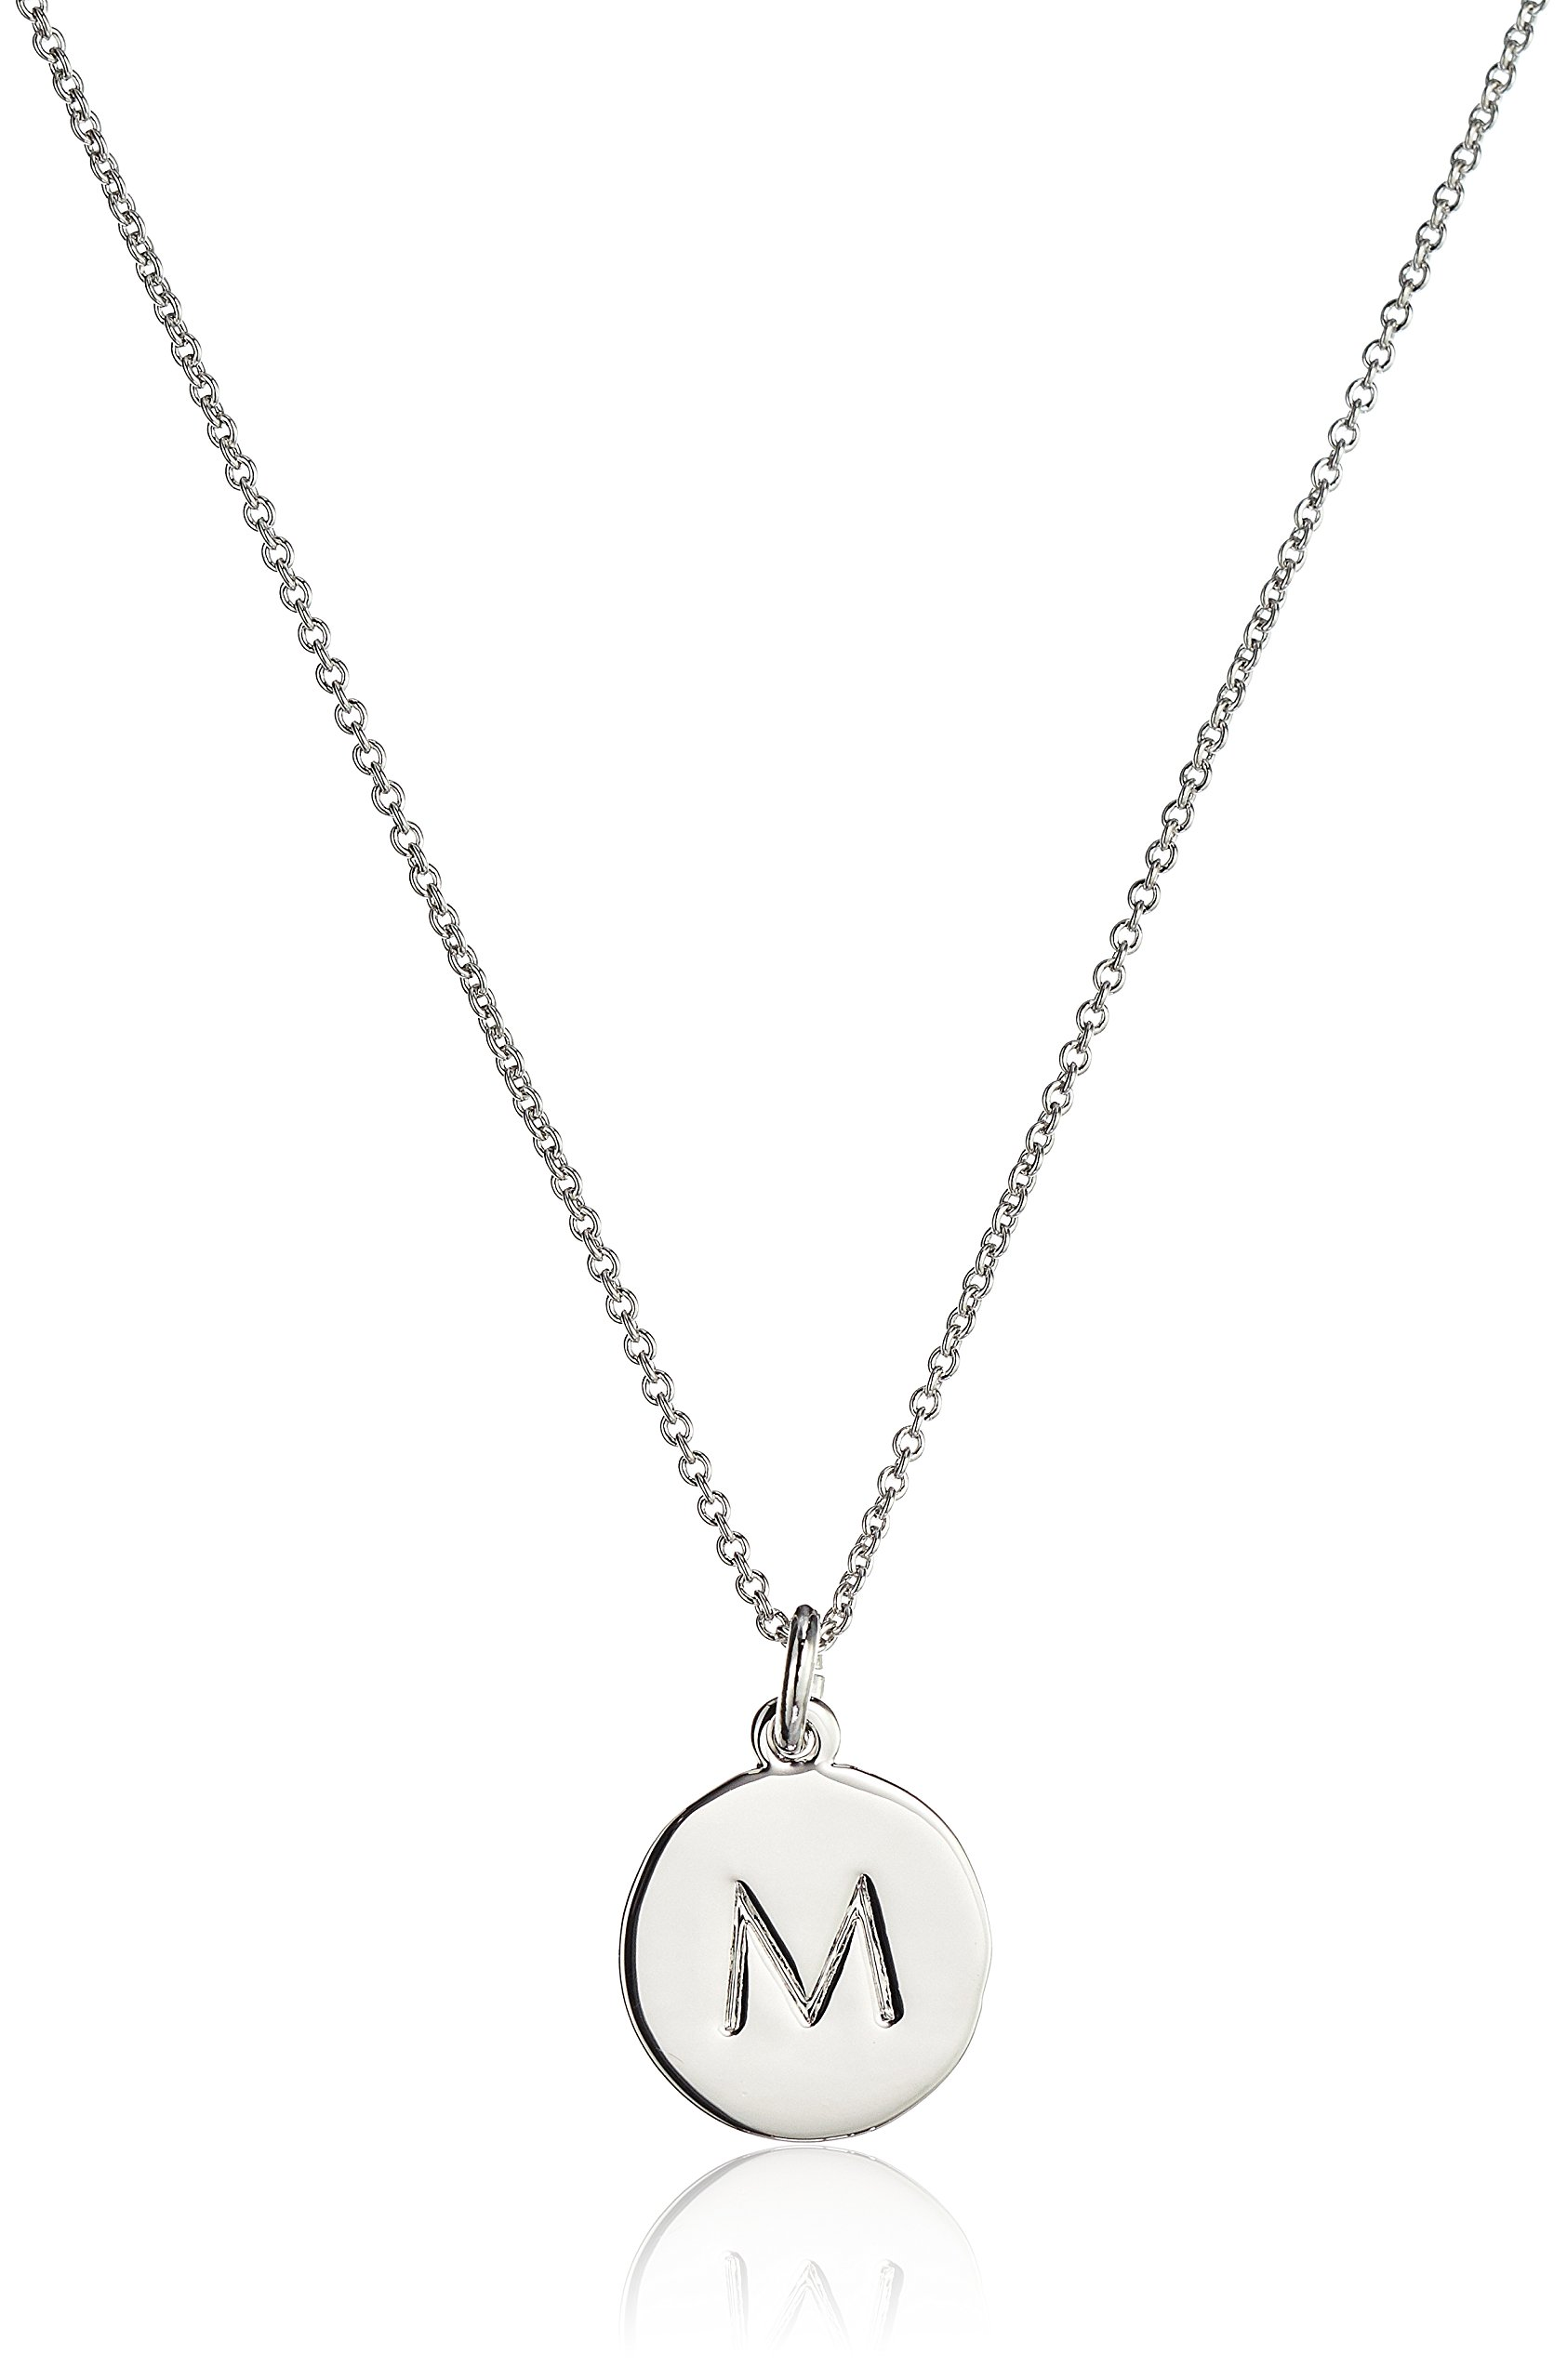 Kate Spade New York  ''M Pendant Necklace, 20'' + 3'' Extender